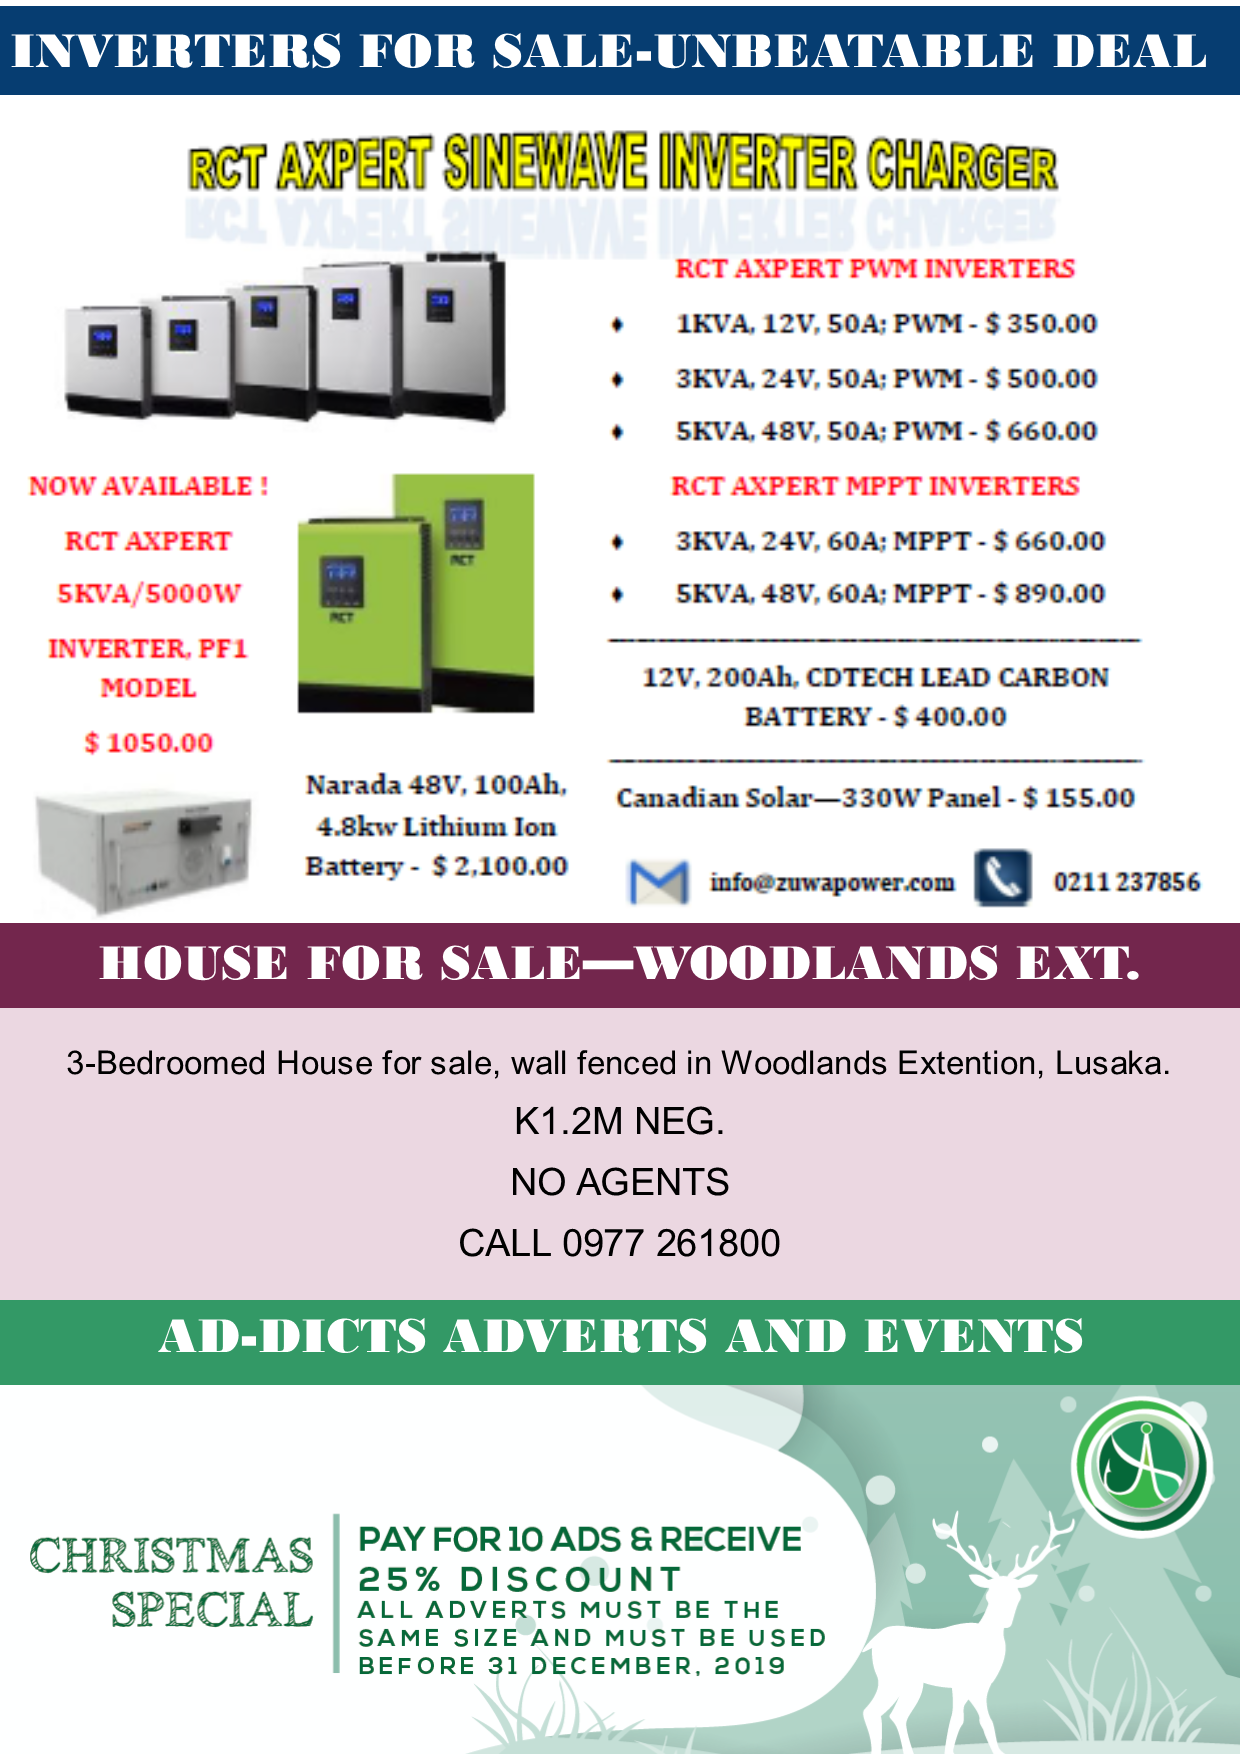 Inverters For Sale >> 21 11 19 Ad Dicts Xmas Special Inverters For Sale